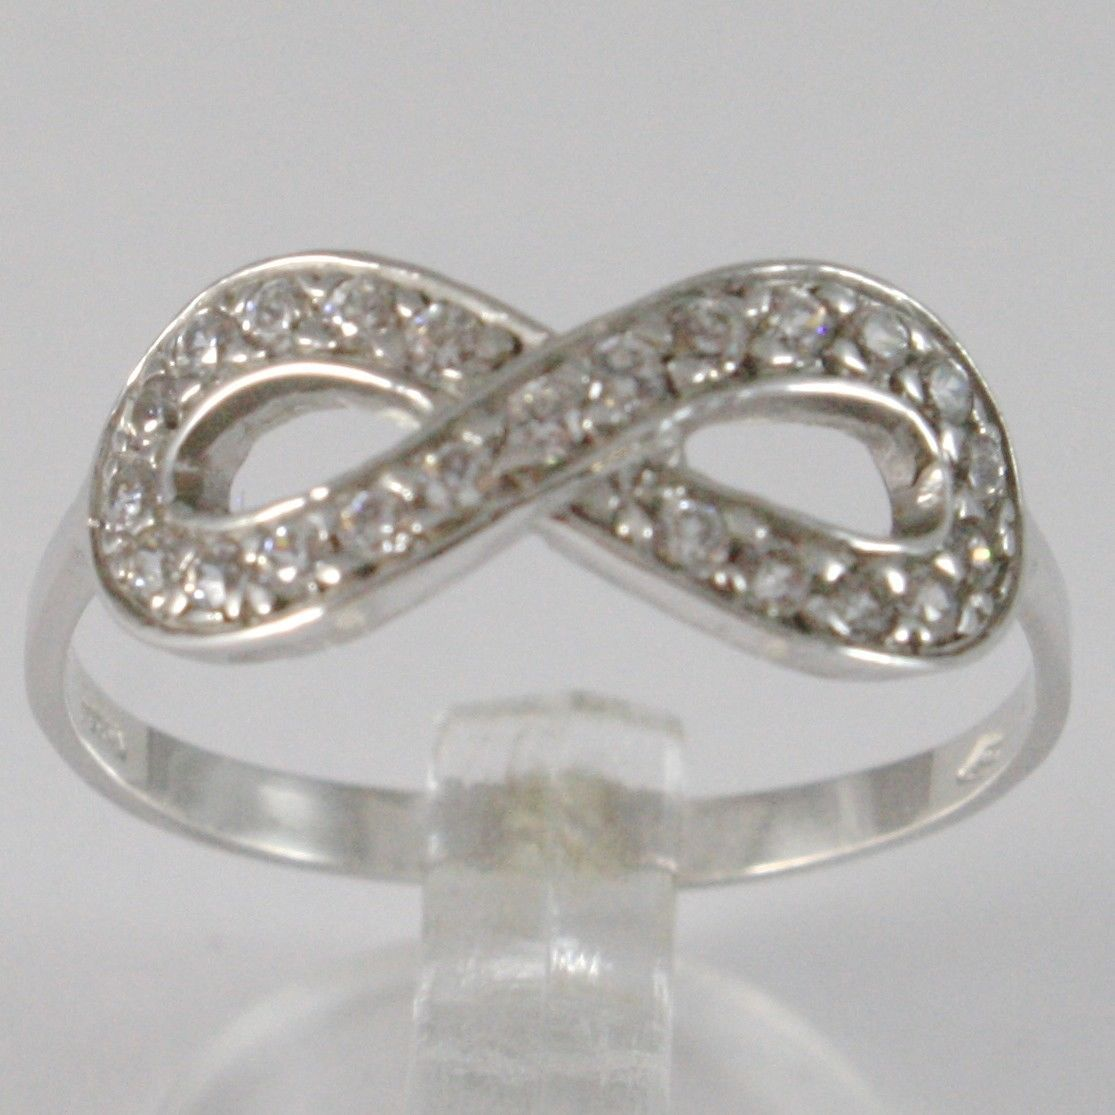 ANELLO IN ORO BIANCO 750 18K, SIMBOLO INFINITO CON ZIRCONIA, MADE IN ITALY